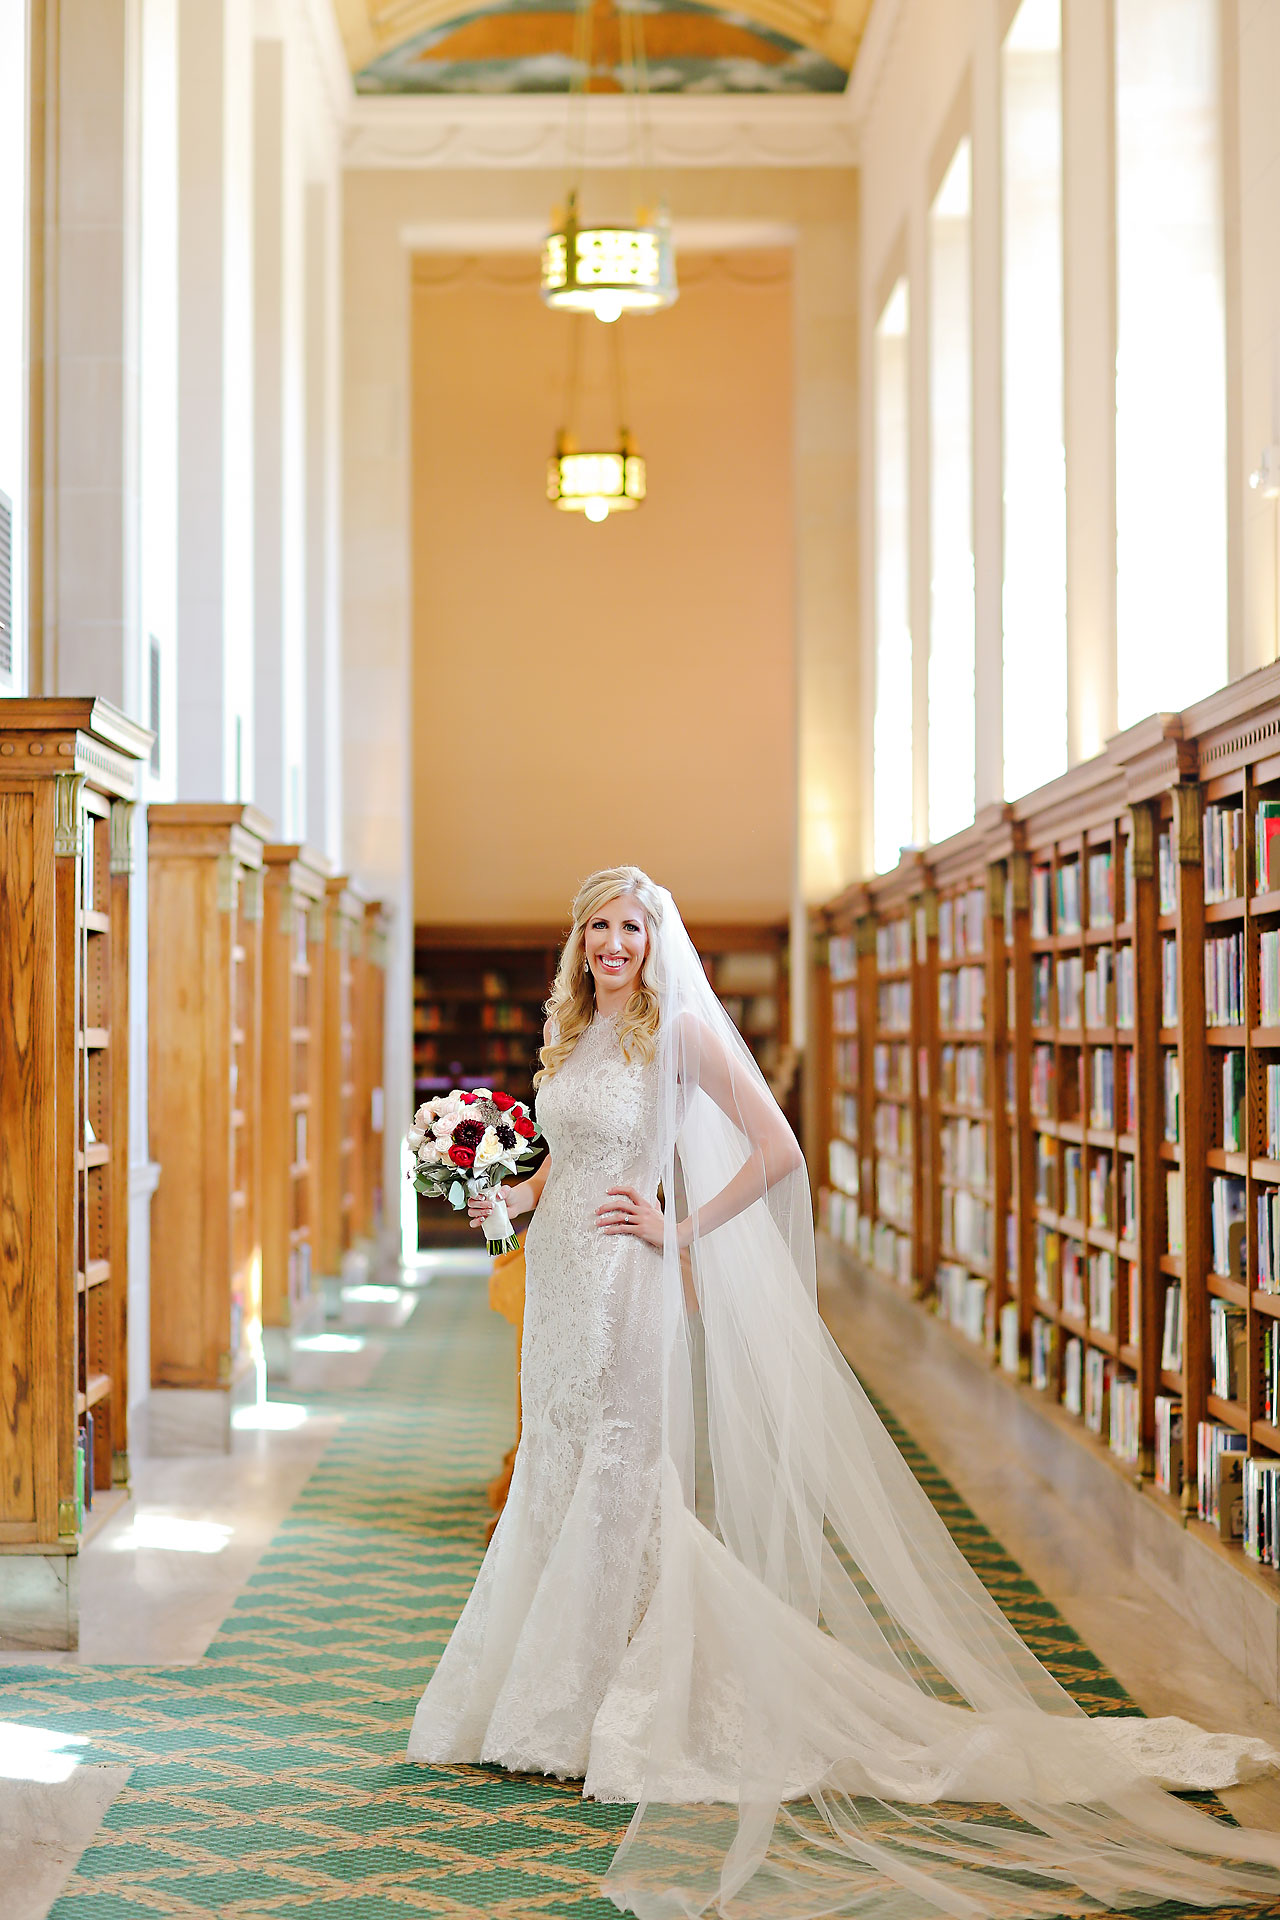 abby nick indianapolis central library wedding 058